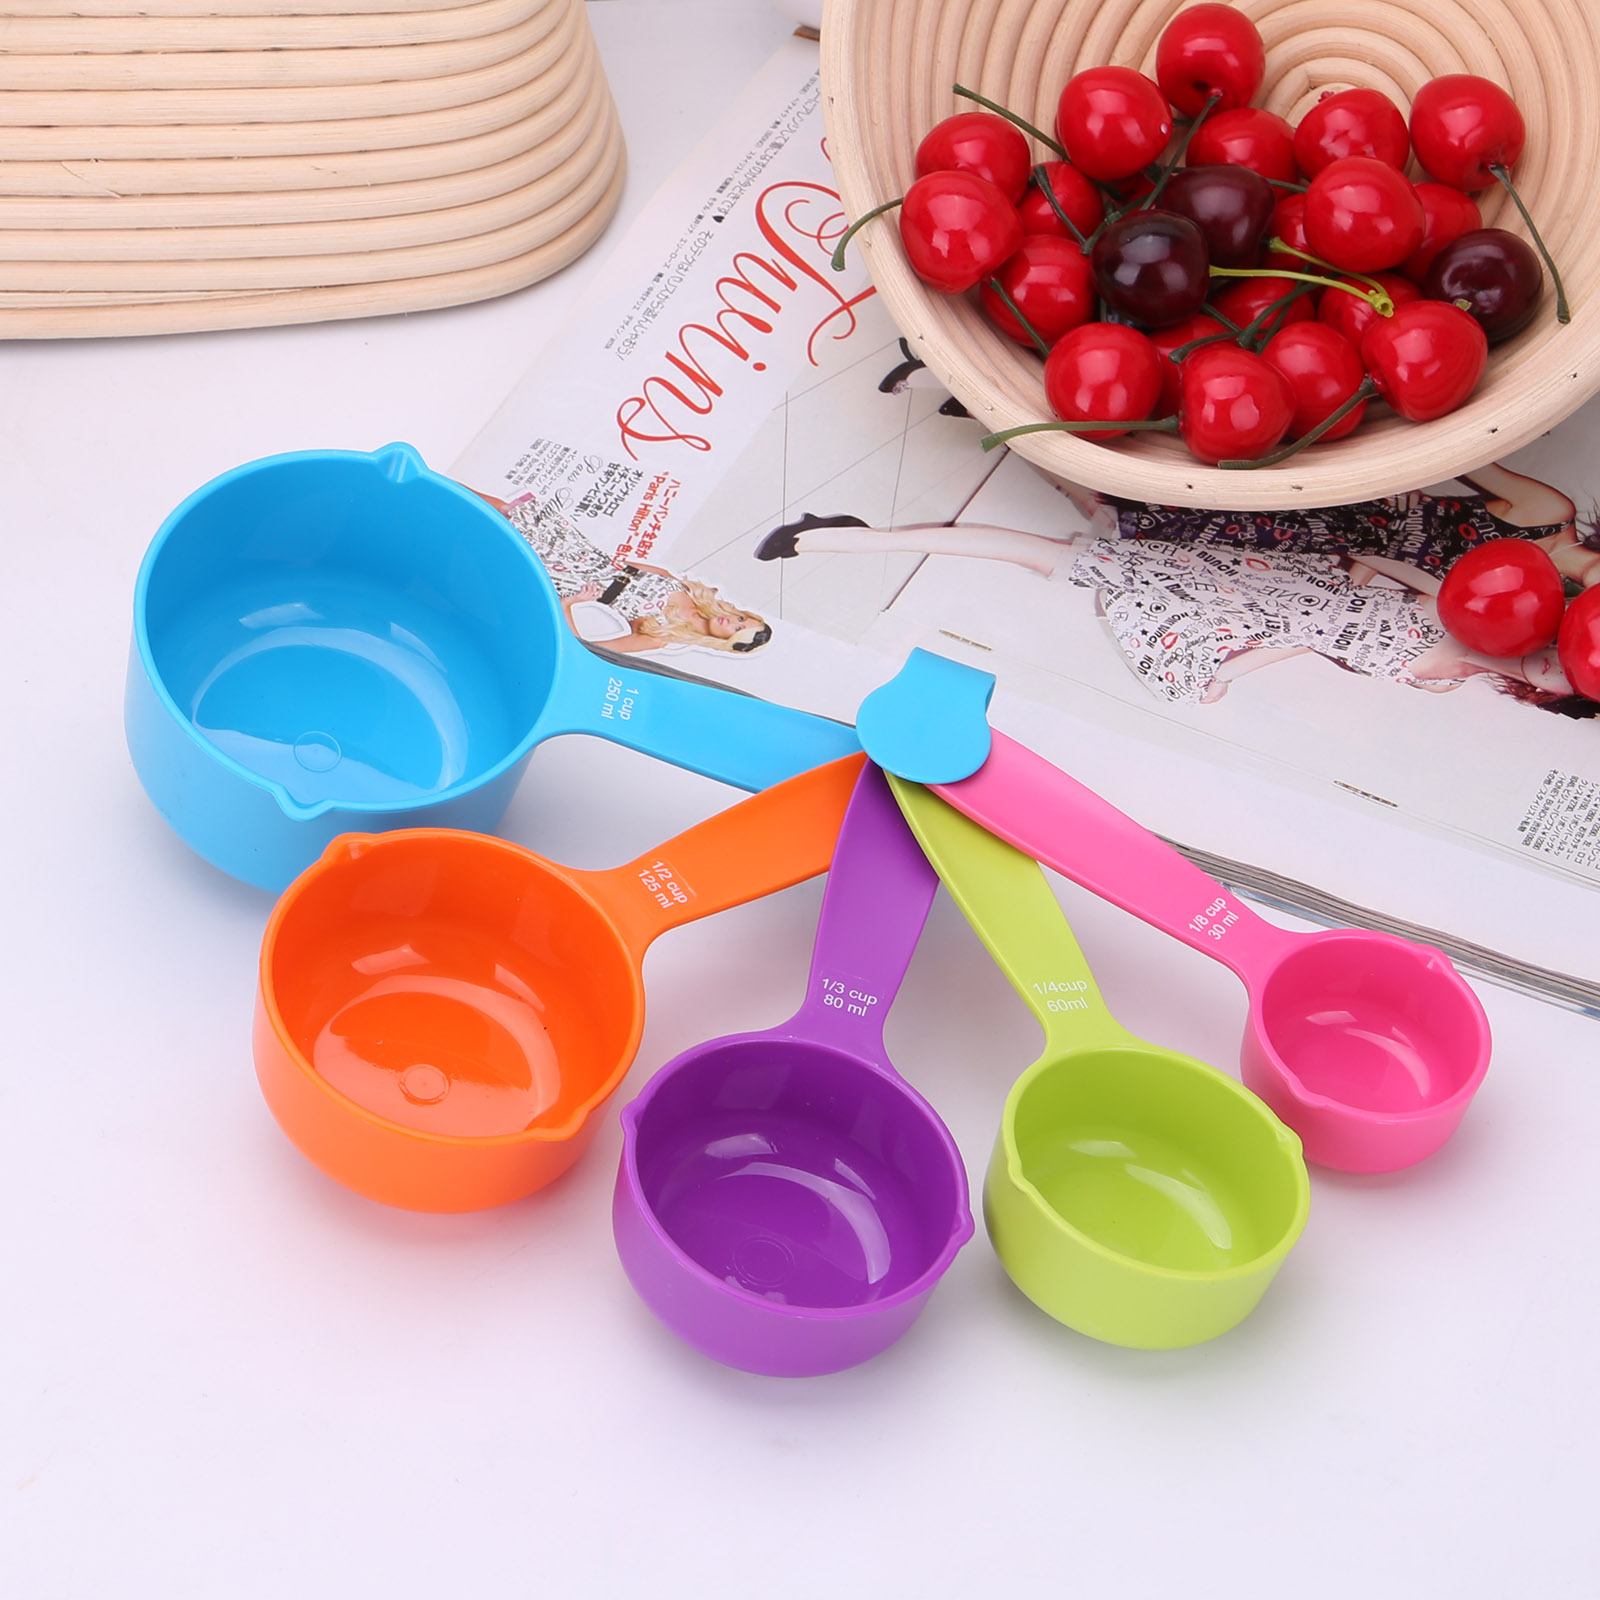 Super Useful Colorful 5pcs Measuring Spoons Kitchen Tools Measuring Cups Baking Utensil Set Measuring Environmentally Friendly